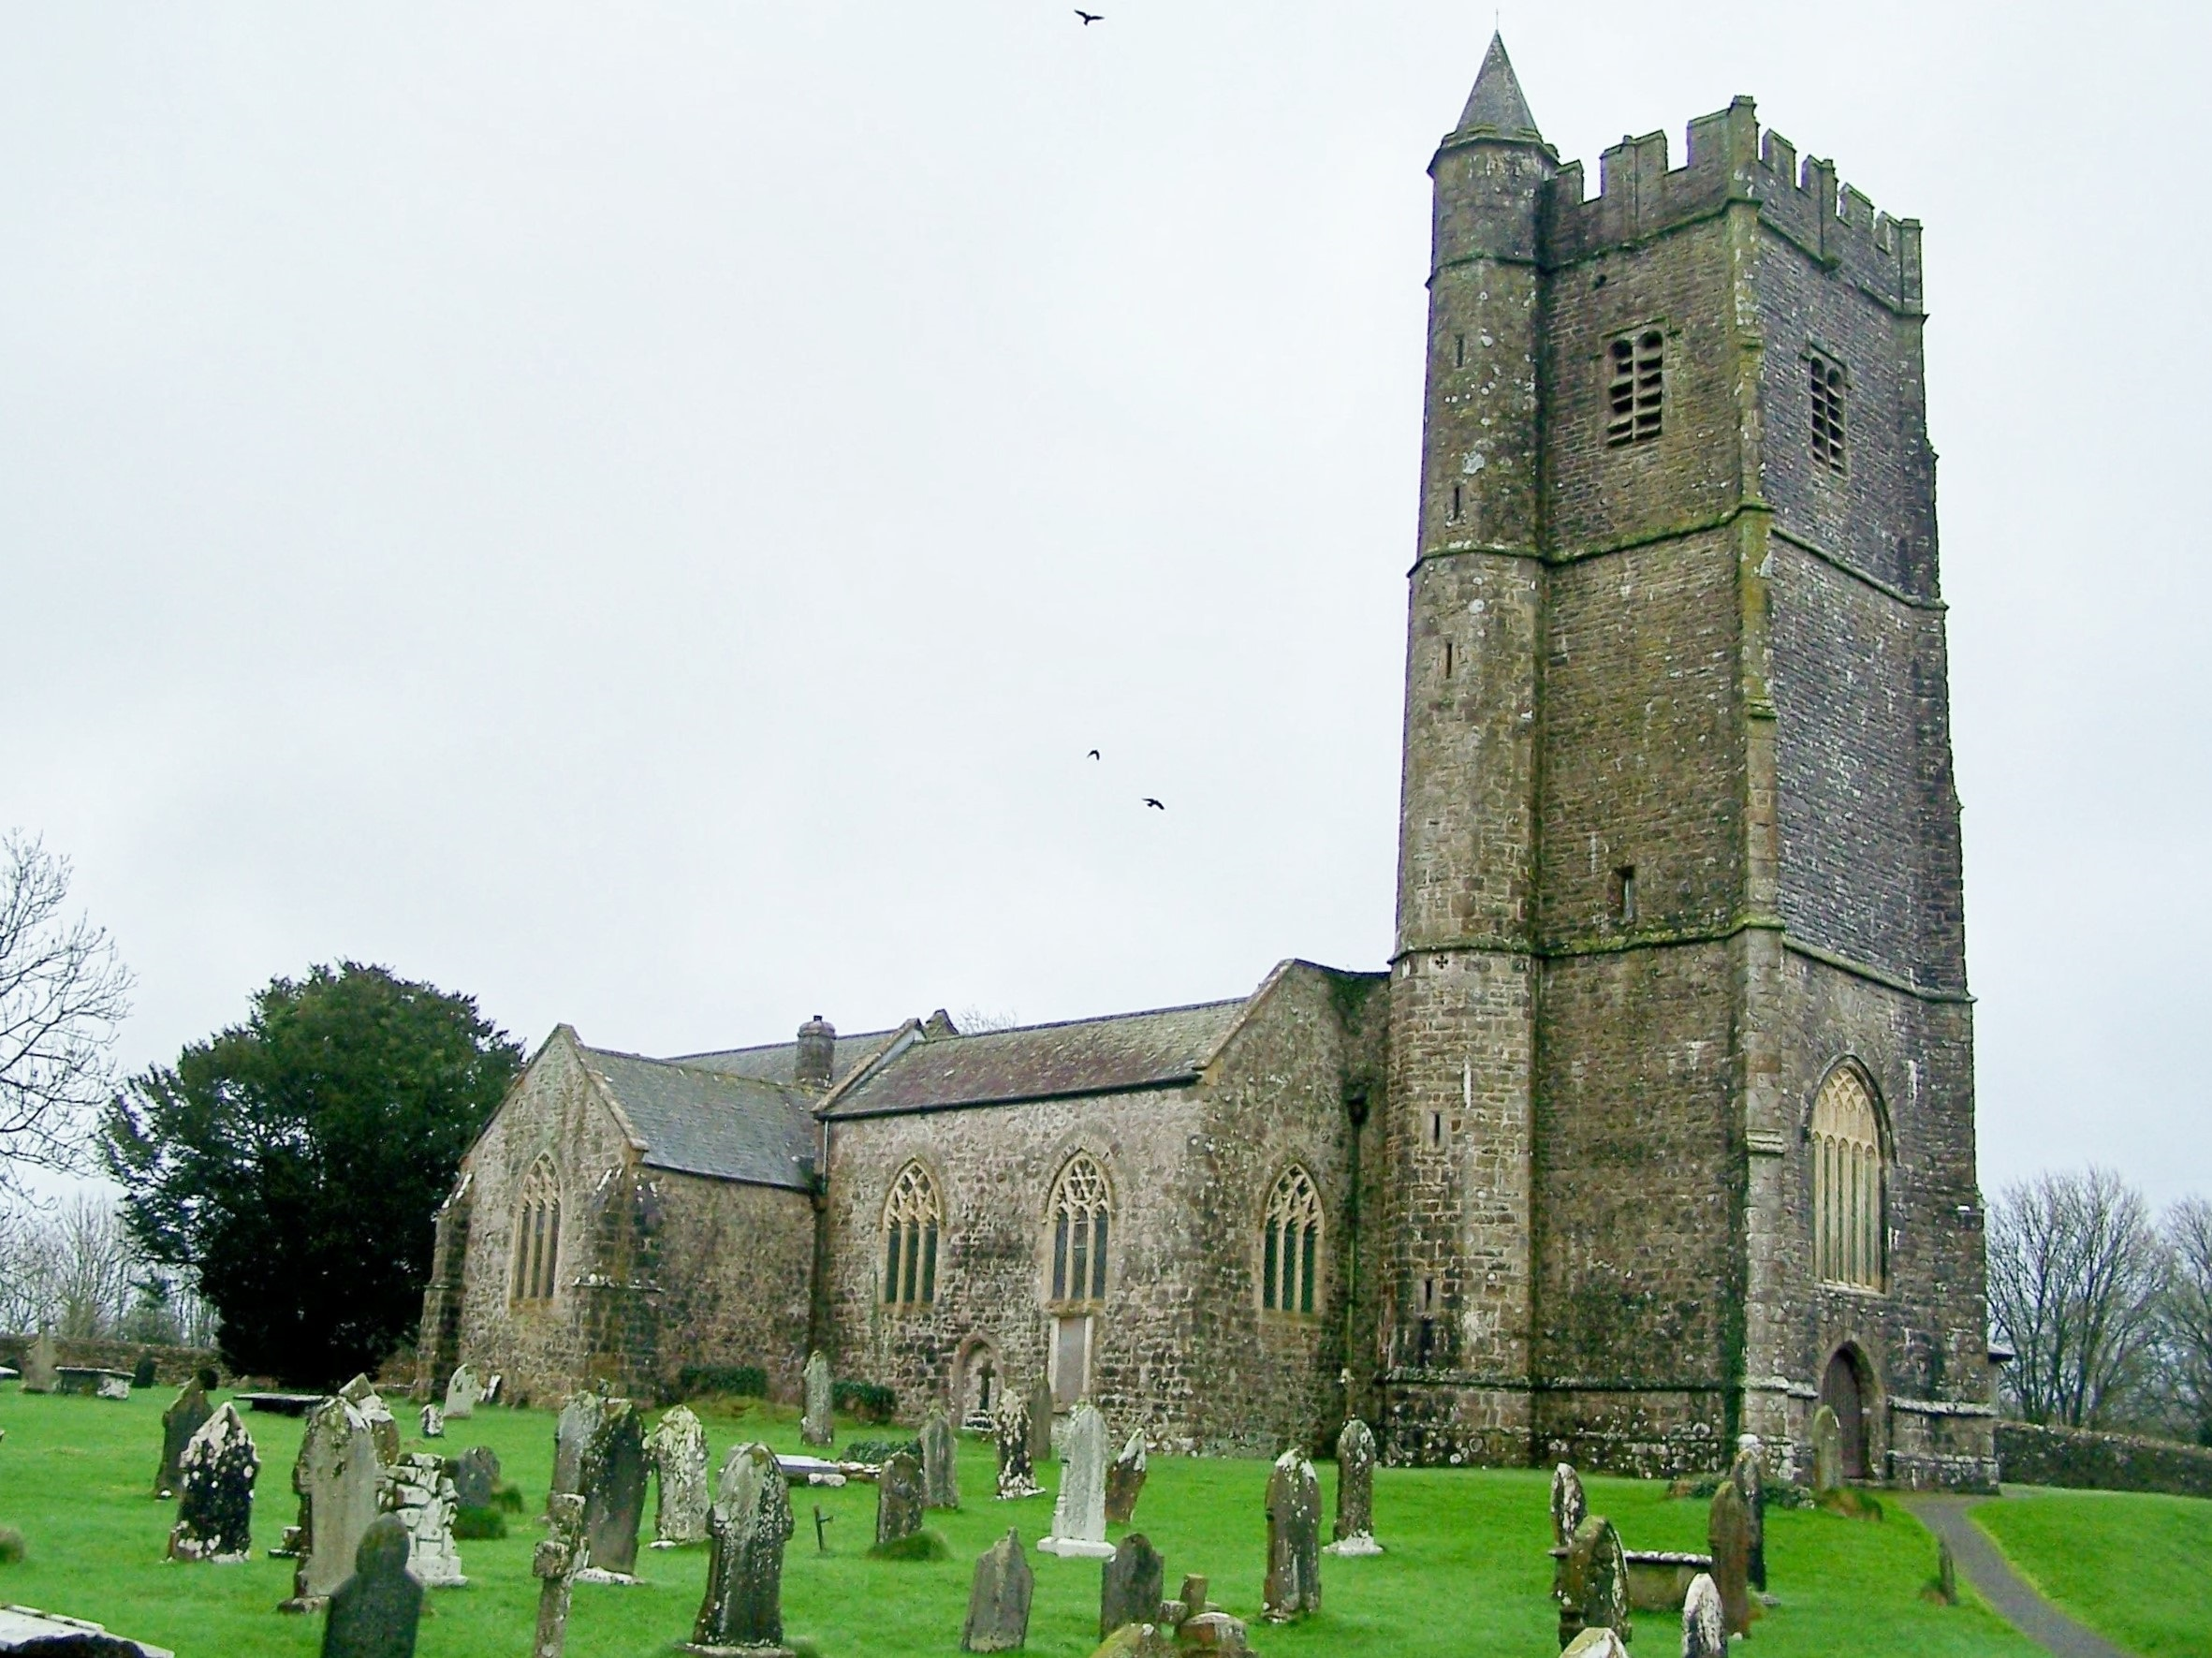 CAREW, St Mary, Pembrokeshire